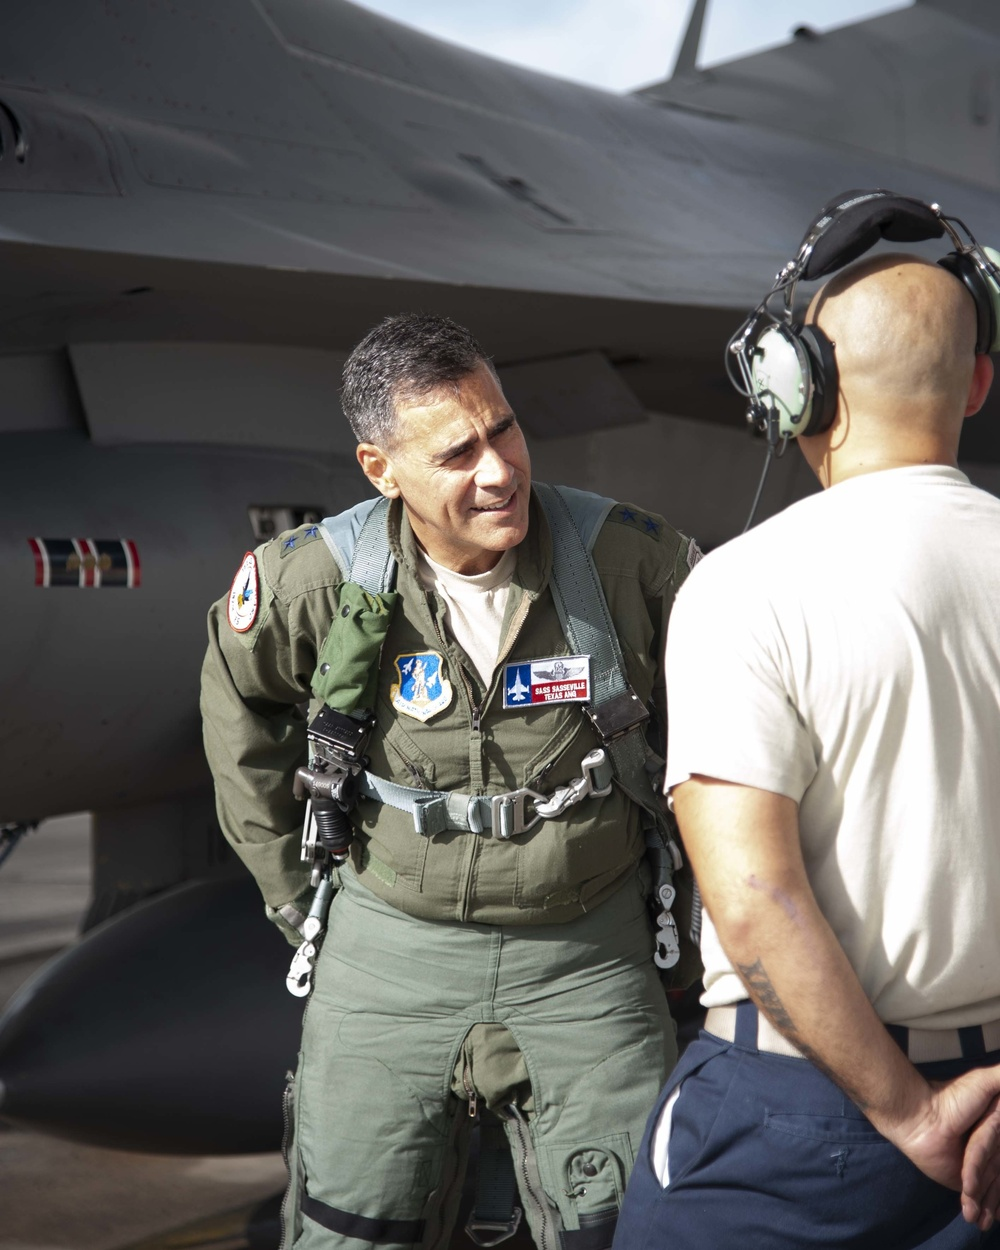 Lt. Gen. Marc H. Sasseville attends Senior Officer Course at the 149th Fighter Wing